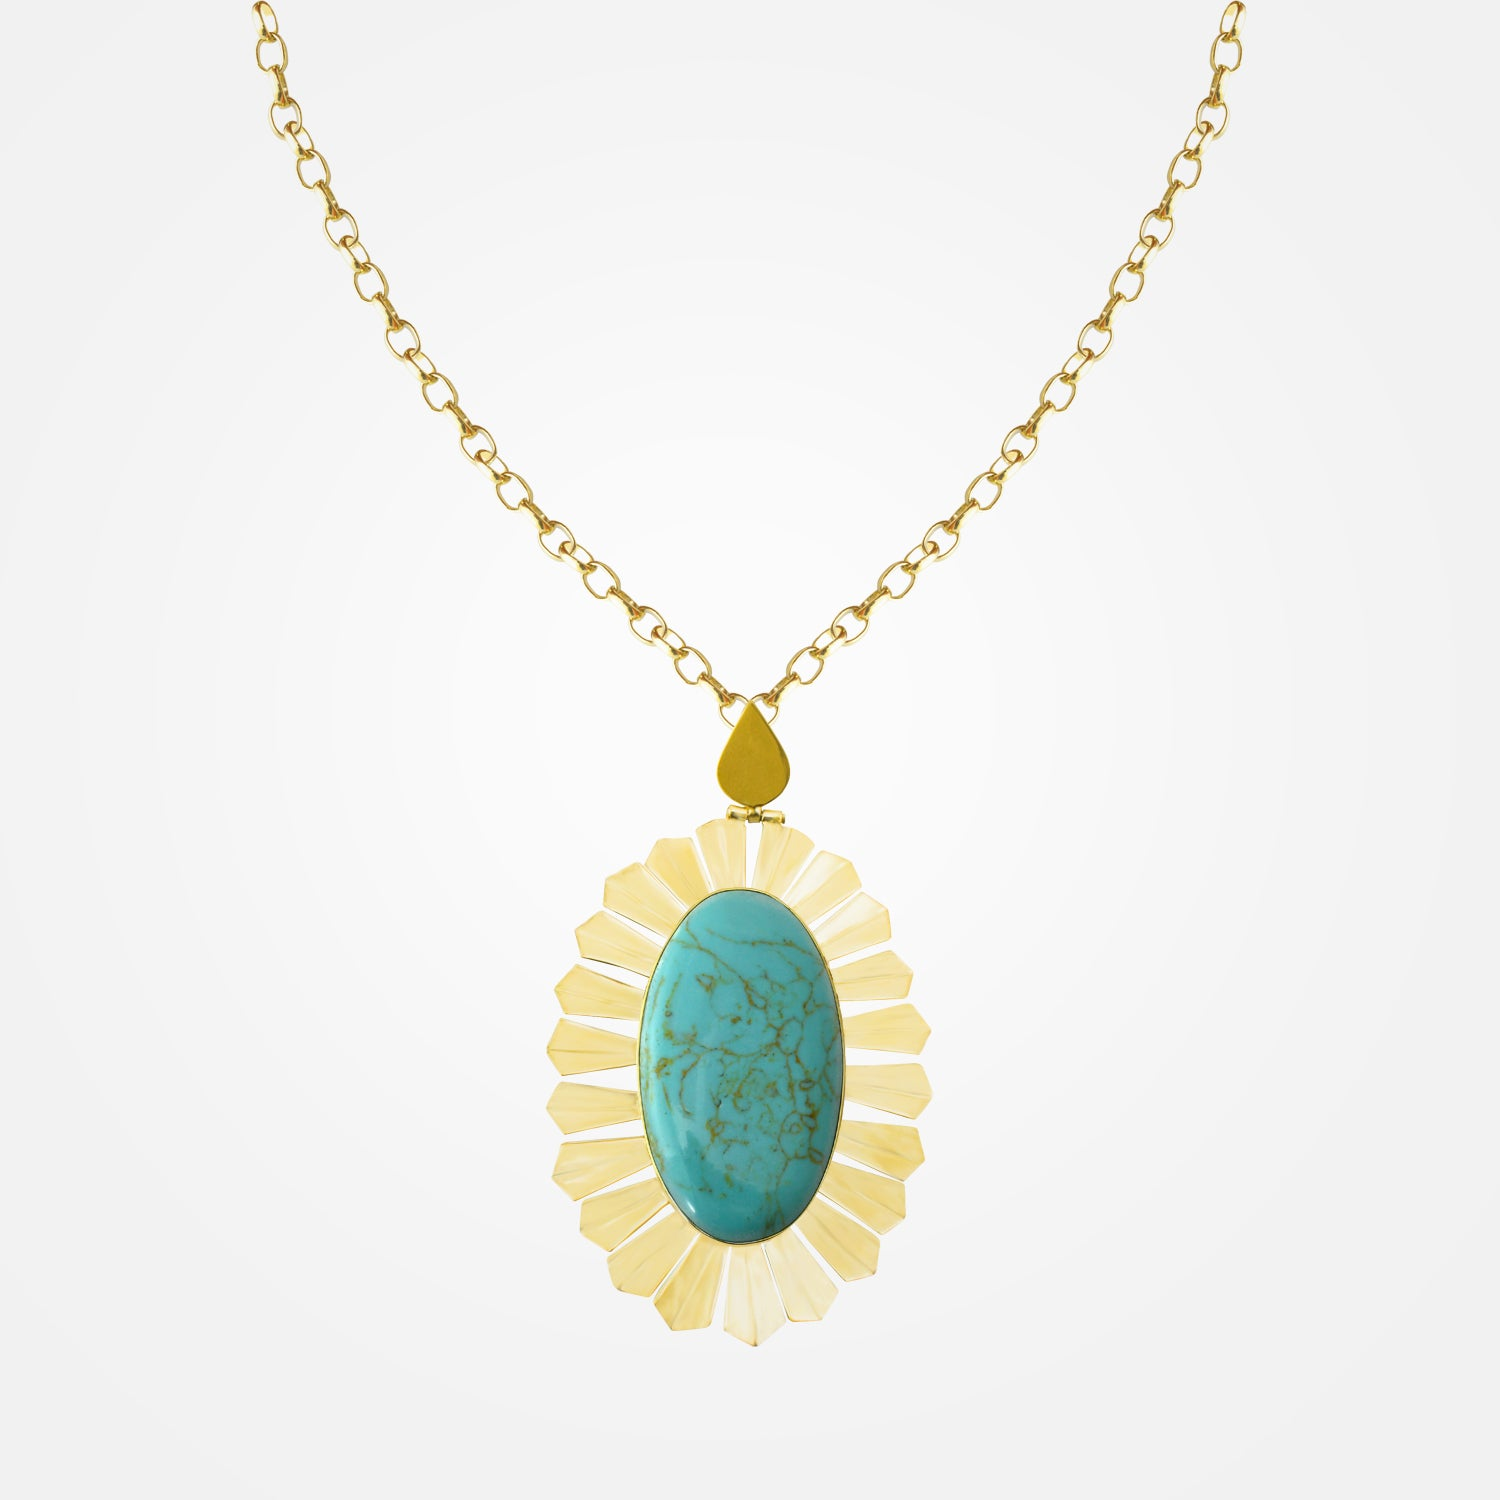 22k Gold Plated Radiant Set - Necklace with Turquoise Stones by Daniel Espinosa